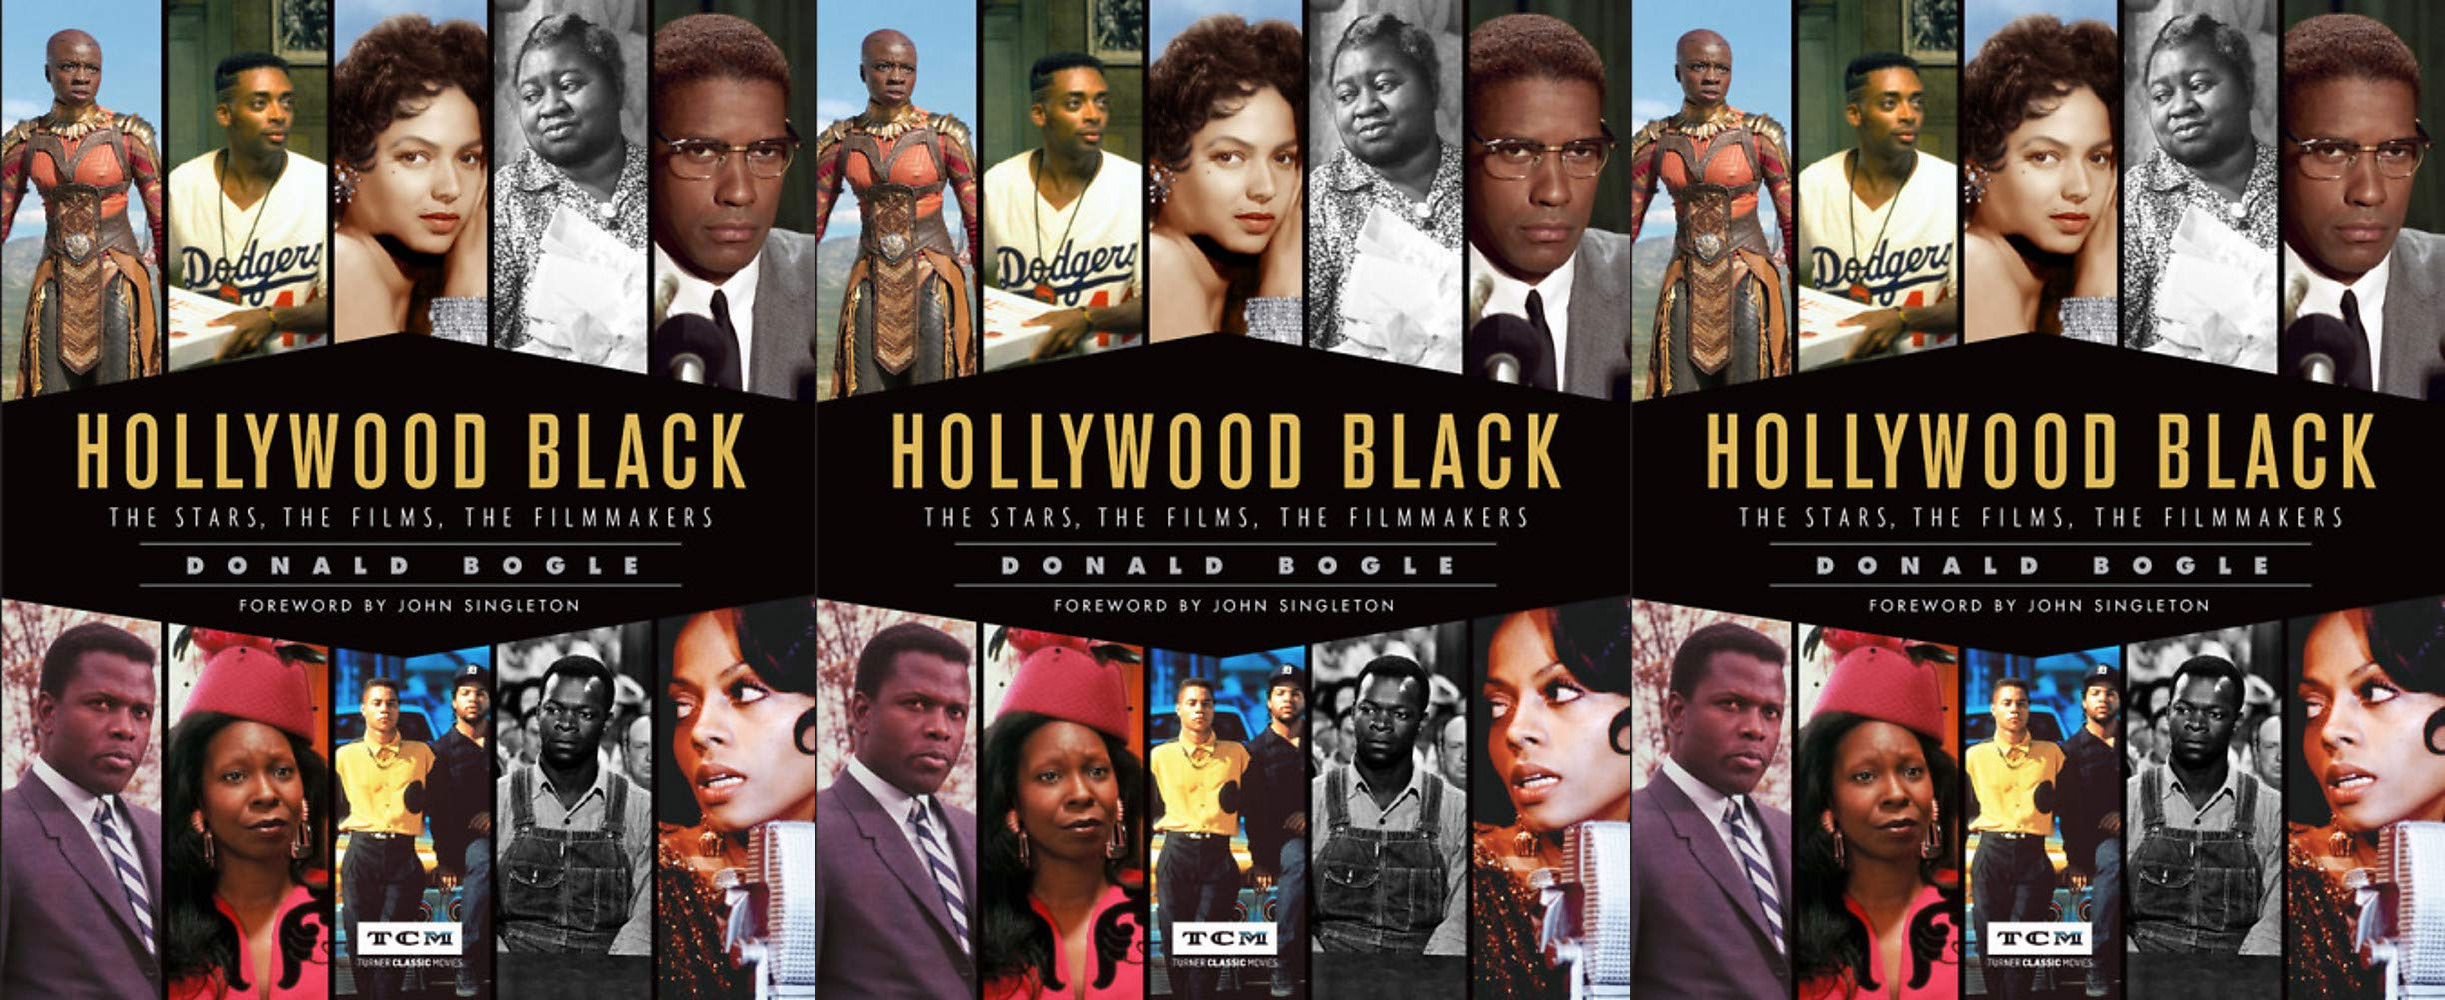 cheap coffee table books, hollywood black: the stars, the filmmakers by donald bogle, books